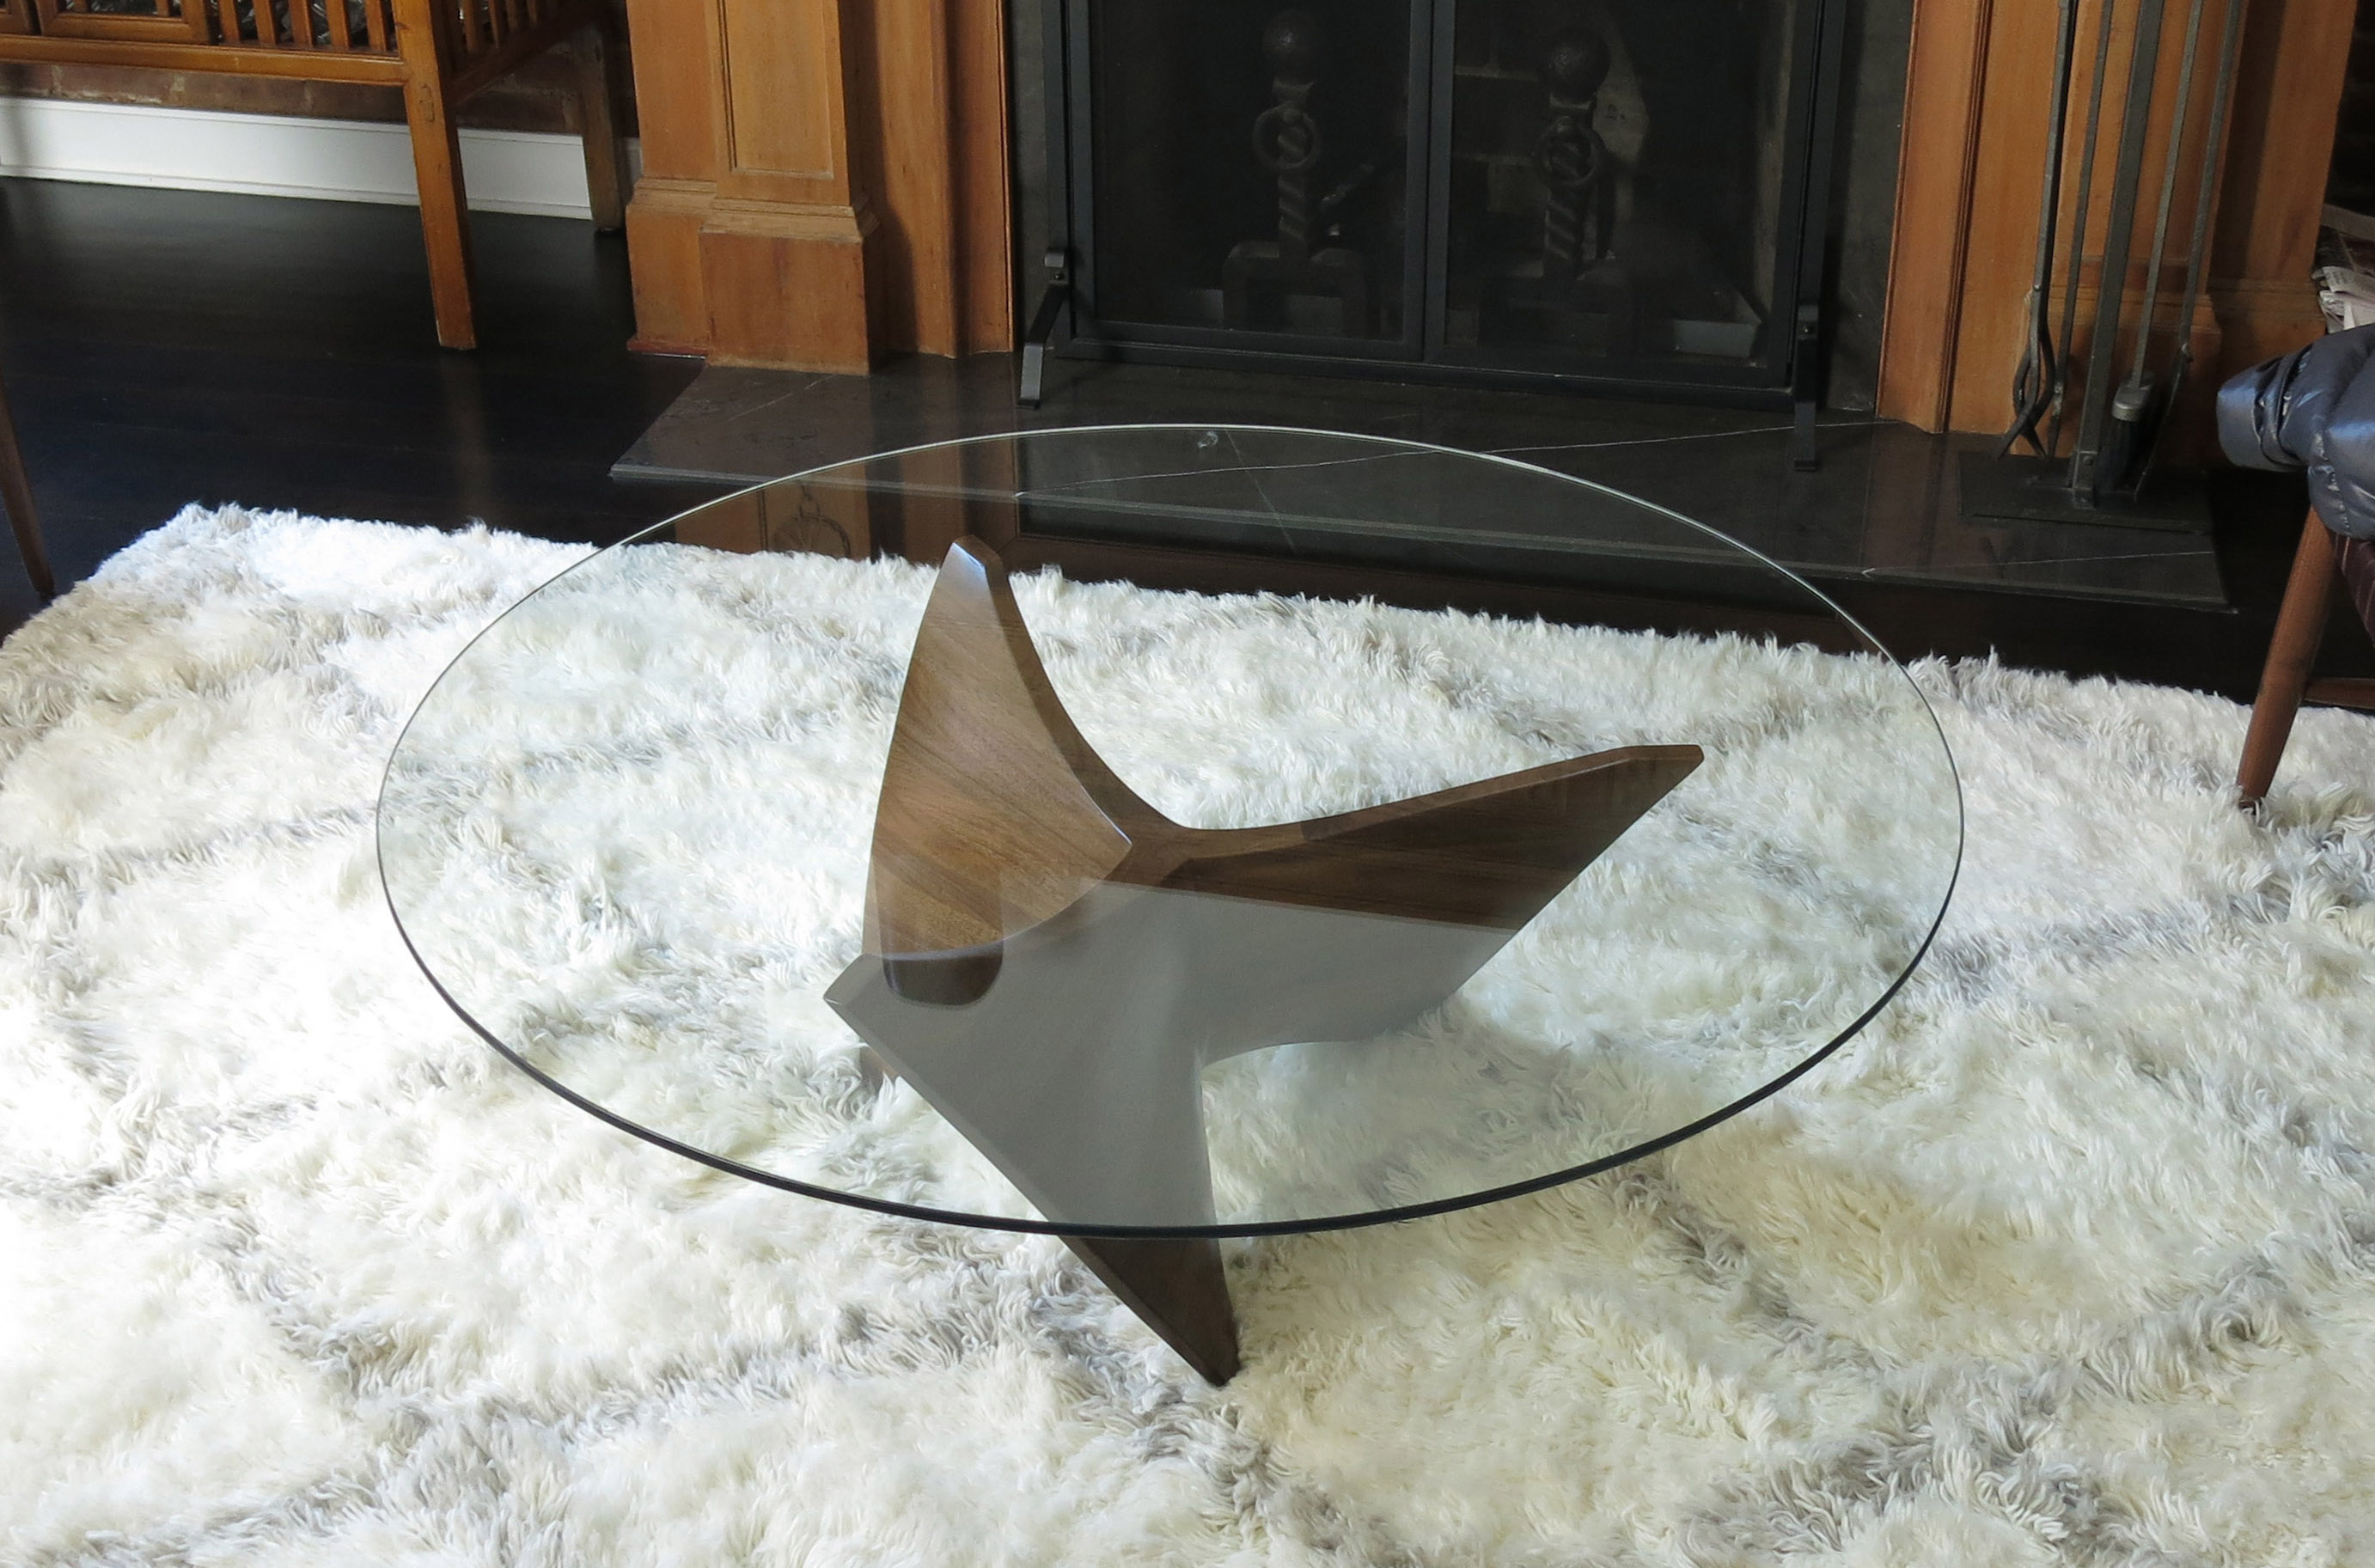 This is a photo of a sculpted wood coffee table installed